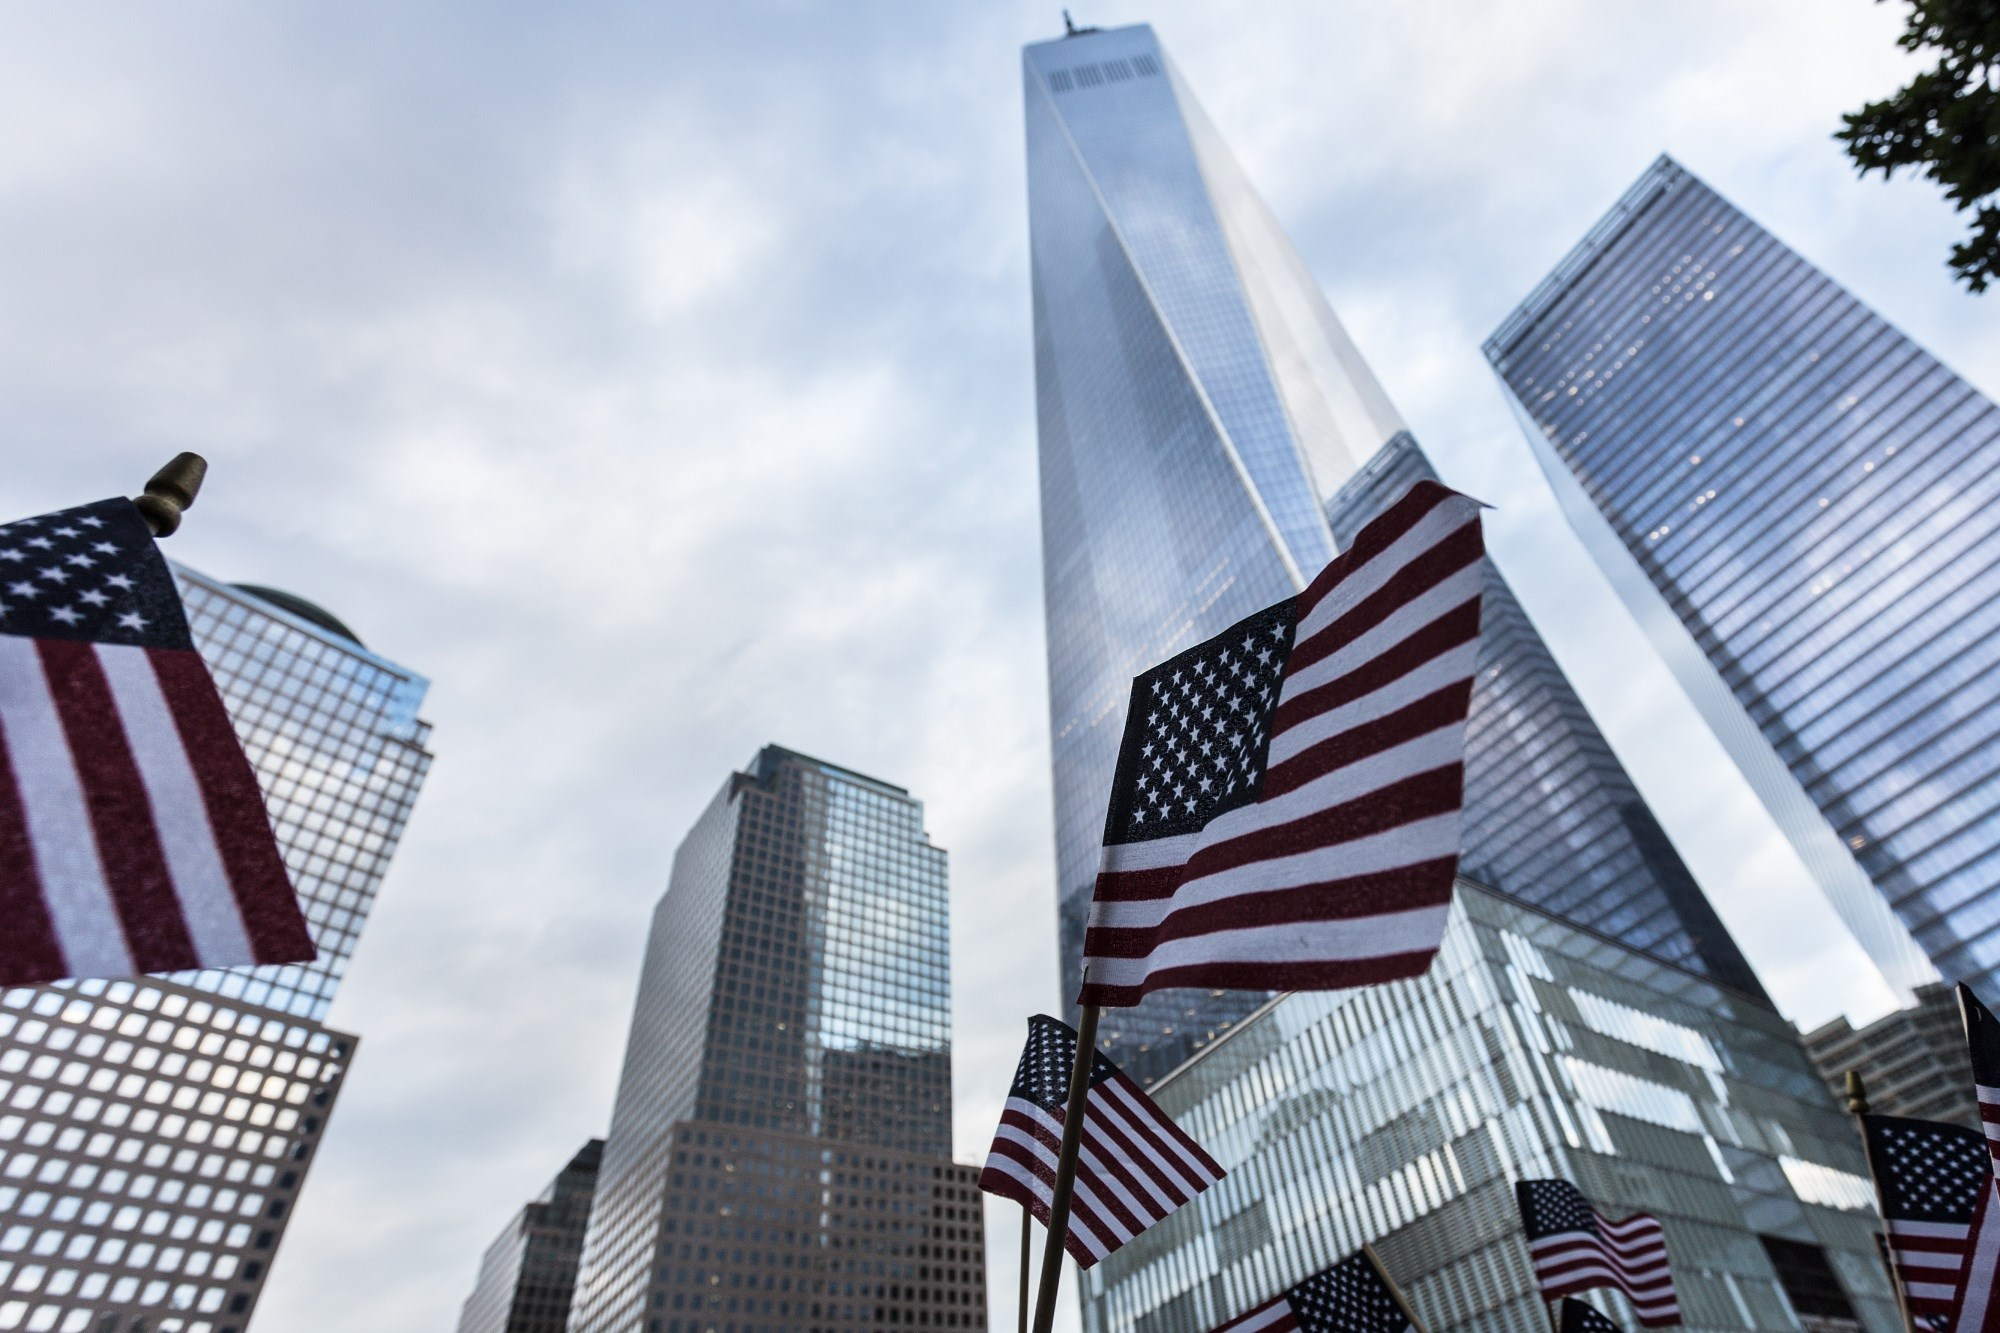 World Trade Center PTSD May Up Risk for Stroke, MI in Clean-Up Crew